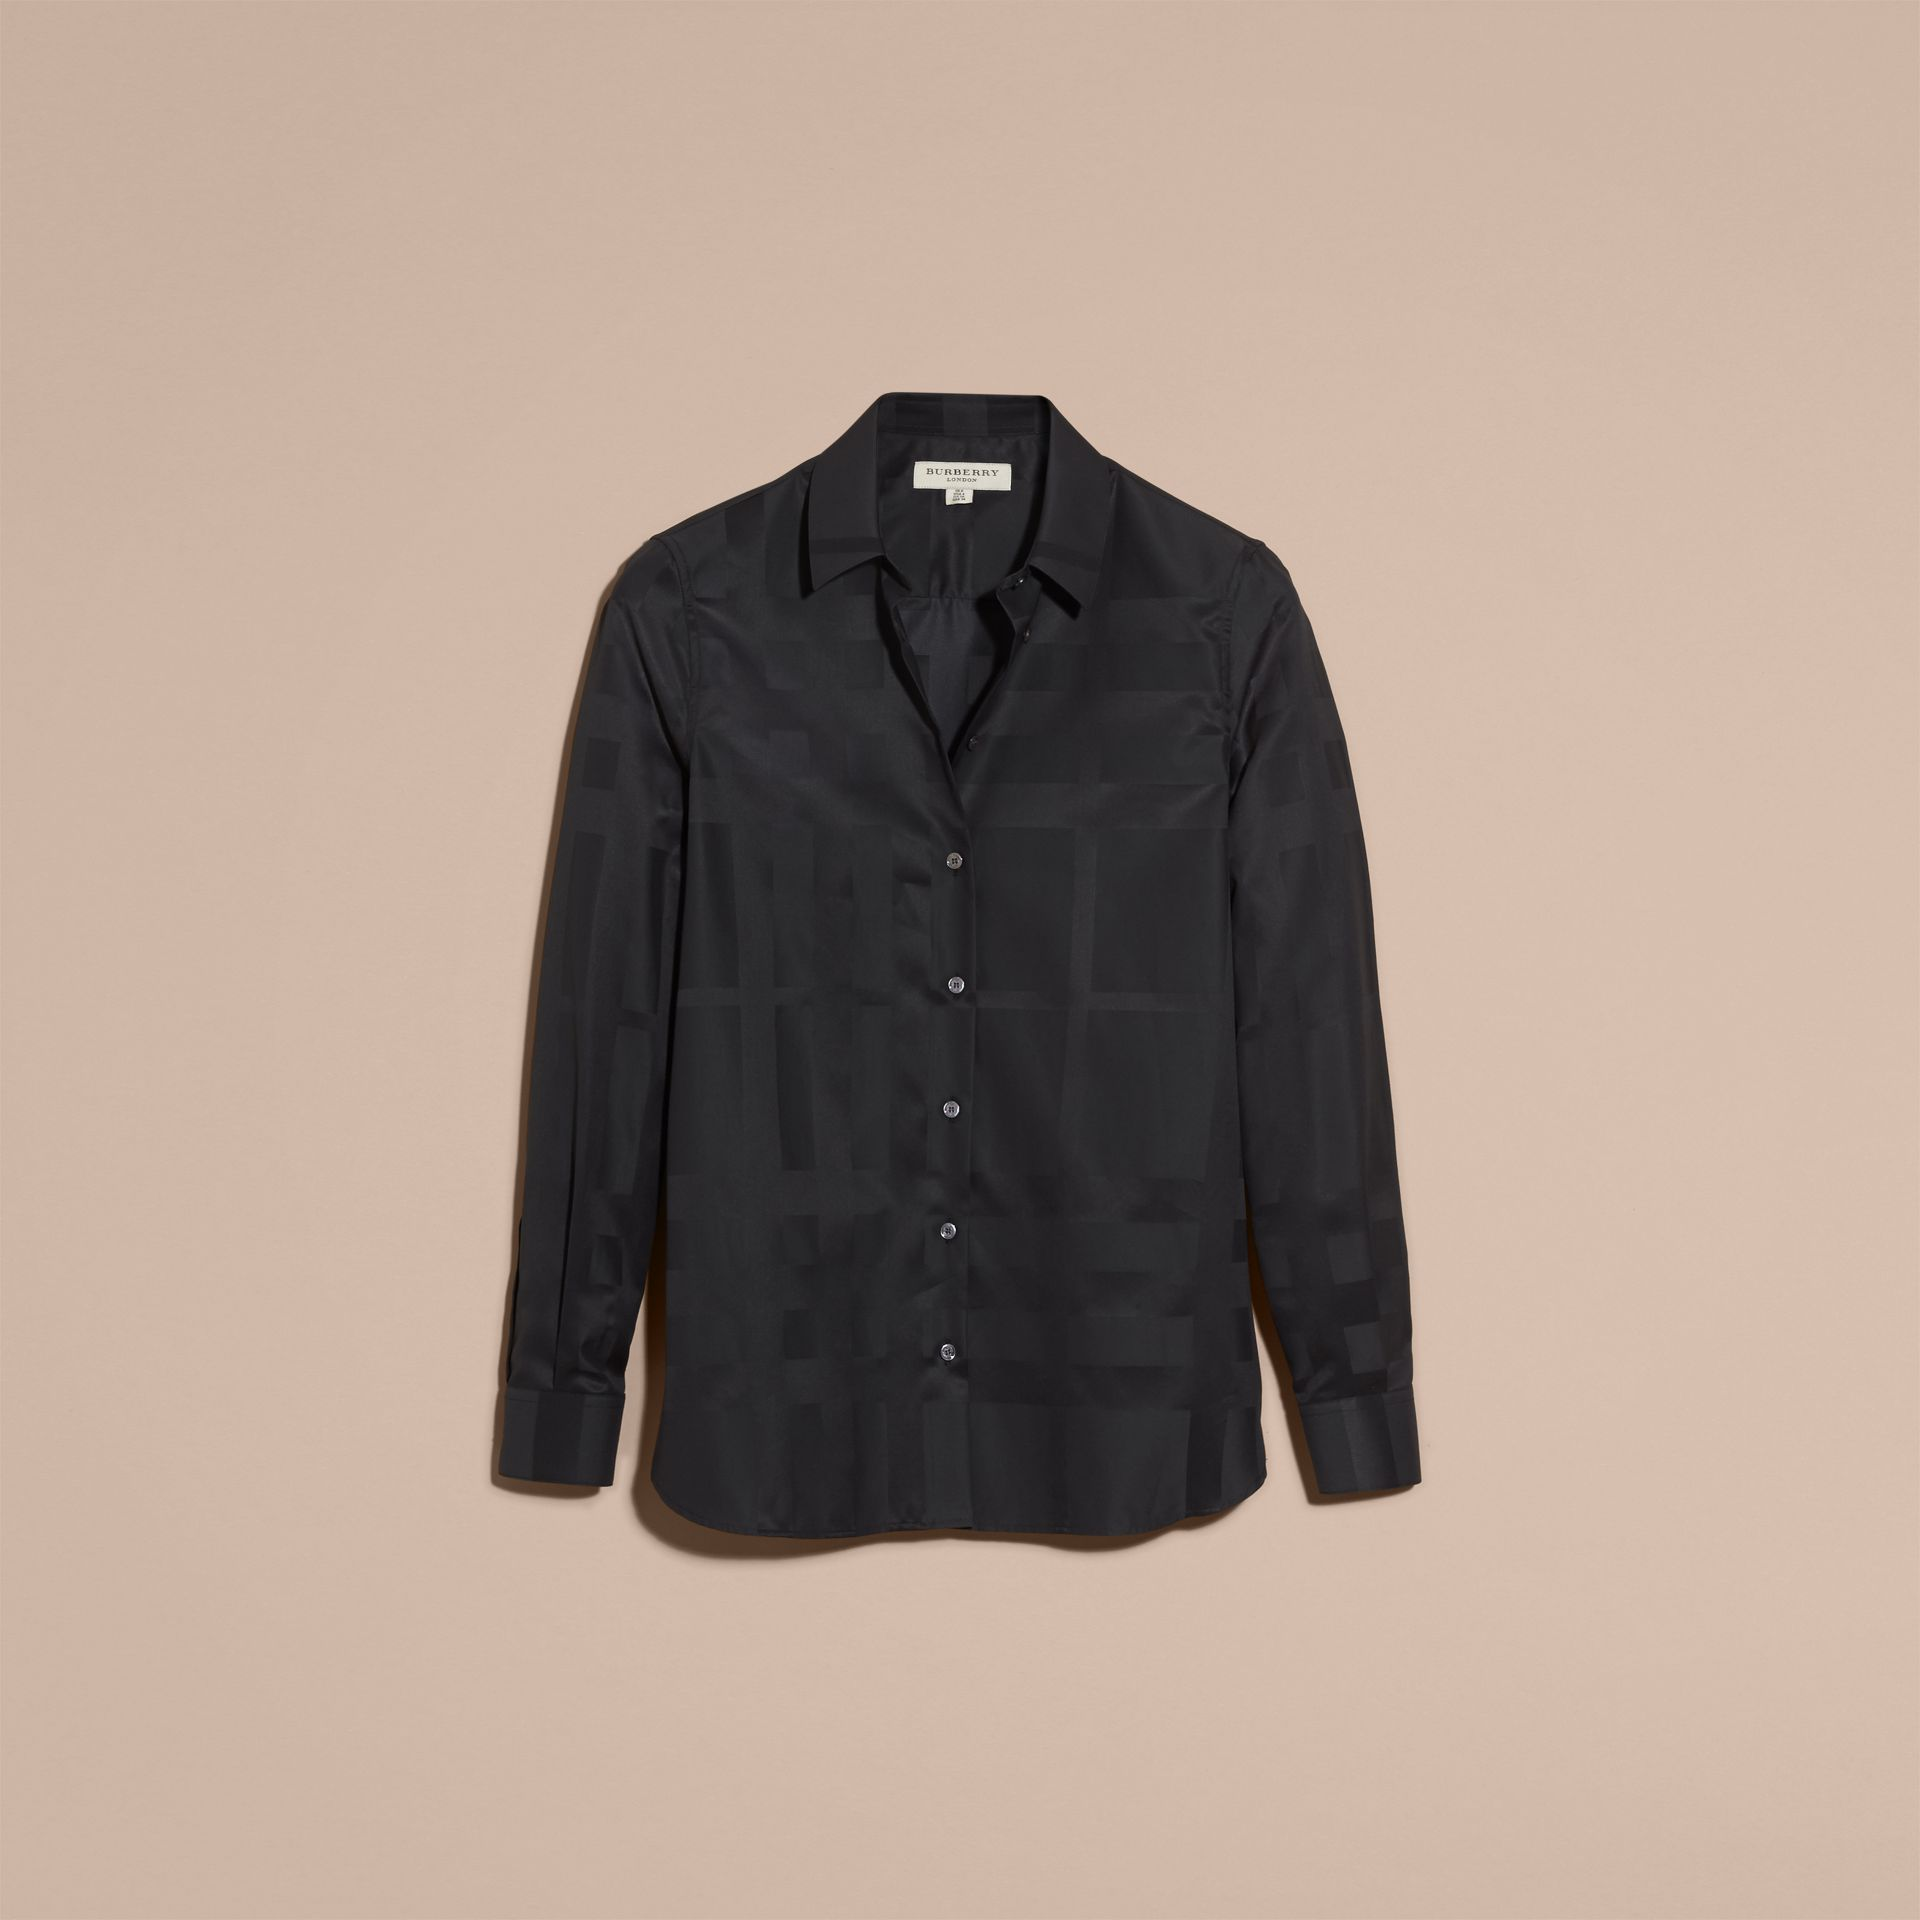 Check Jacquard Cotton Shirt in Black - Women | Burberry Australia - gallery image 4